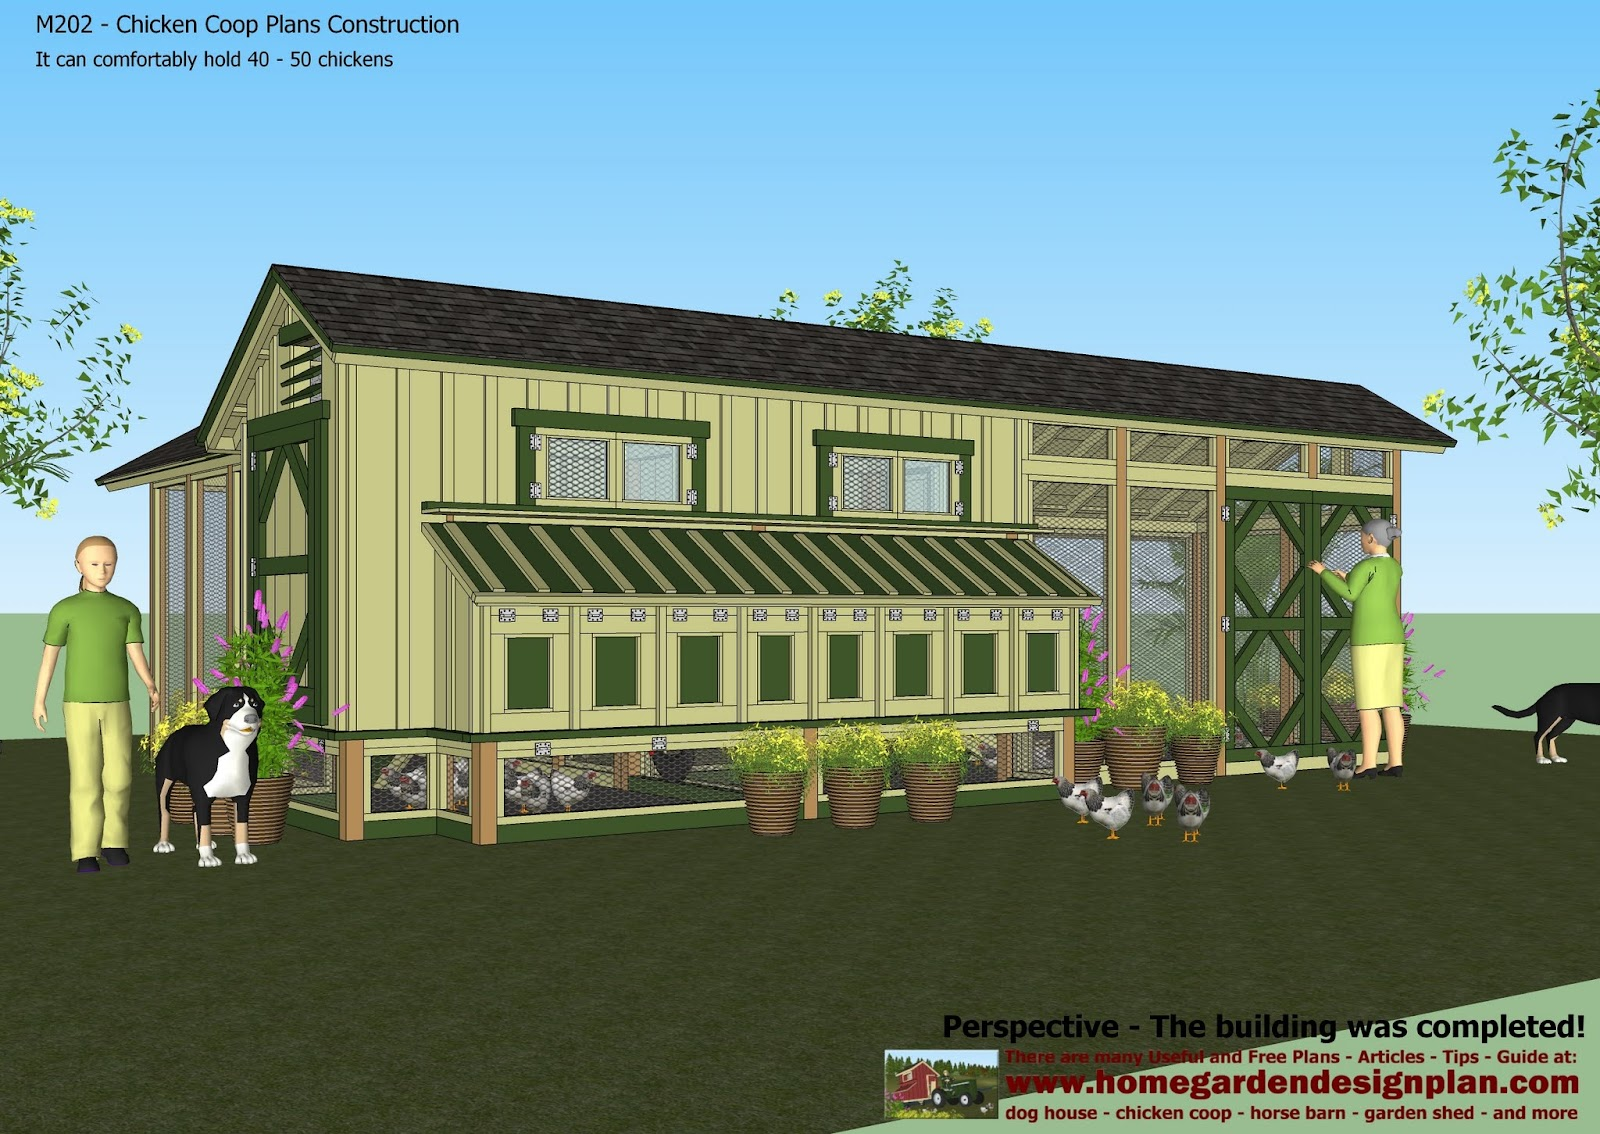 Share large chicken coop plans for sale venpa for Large chicken house